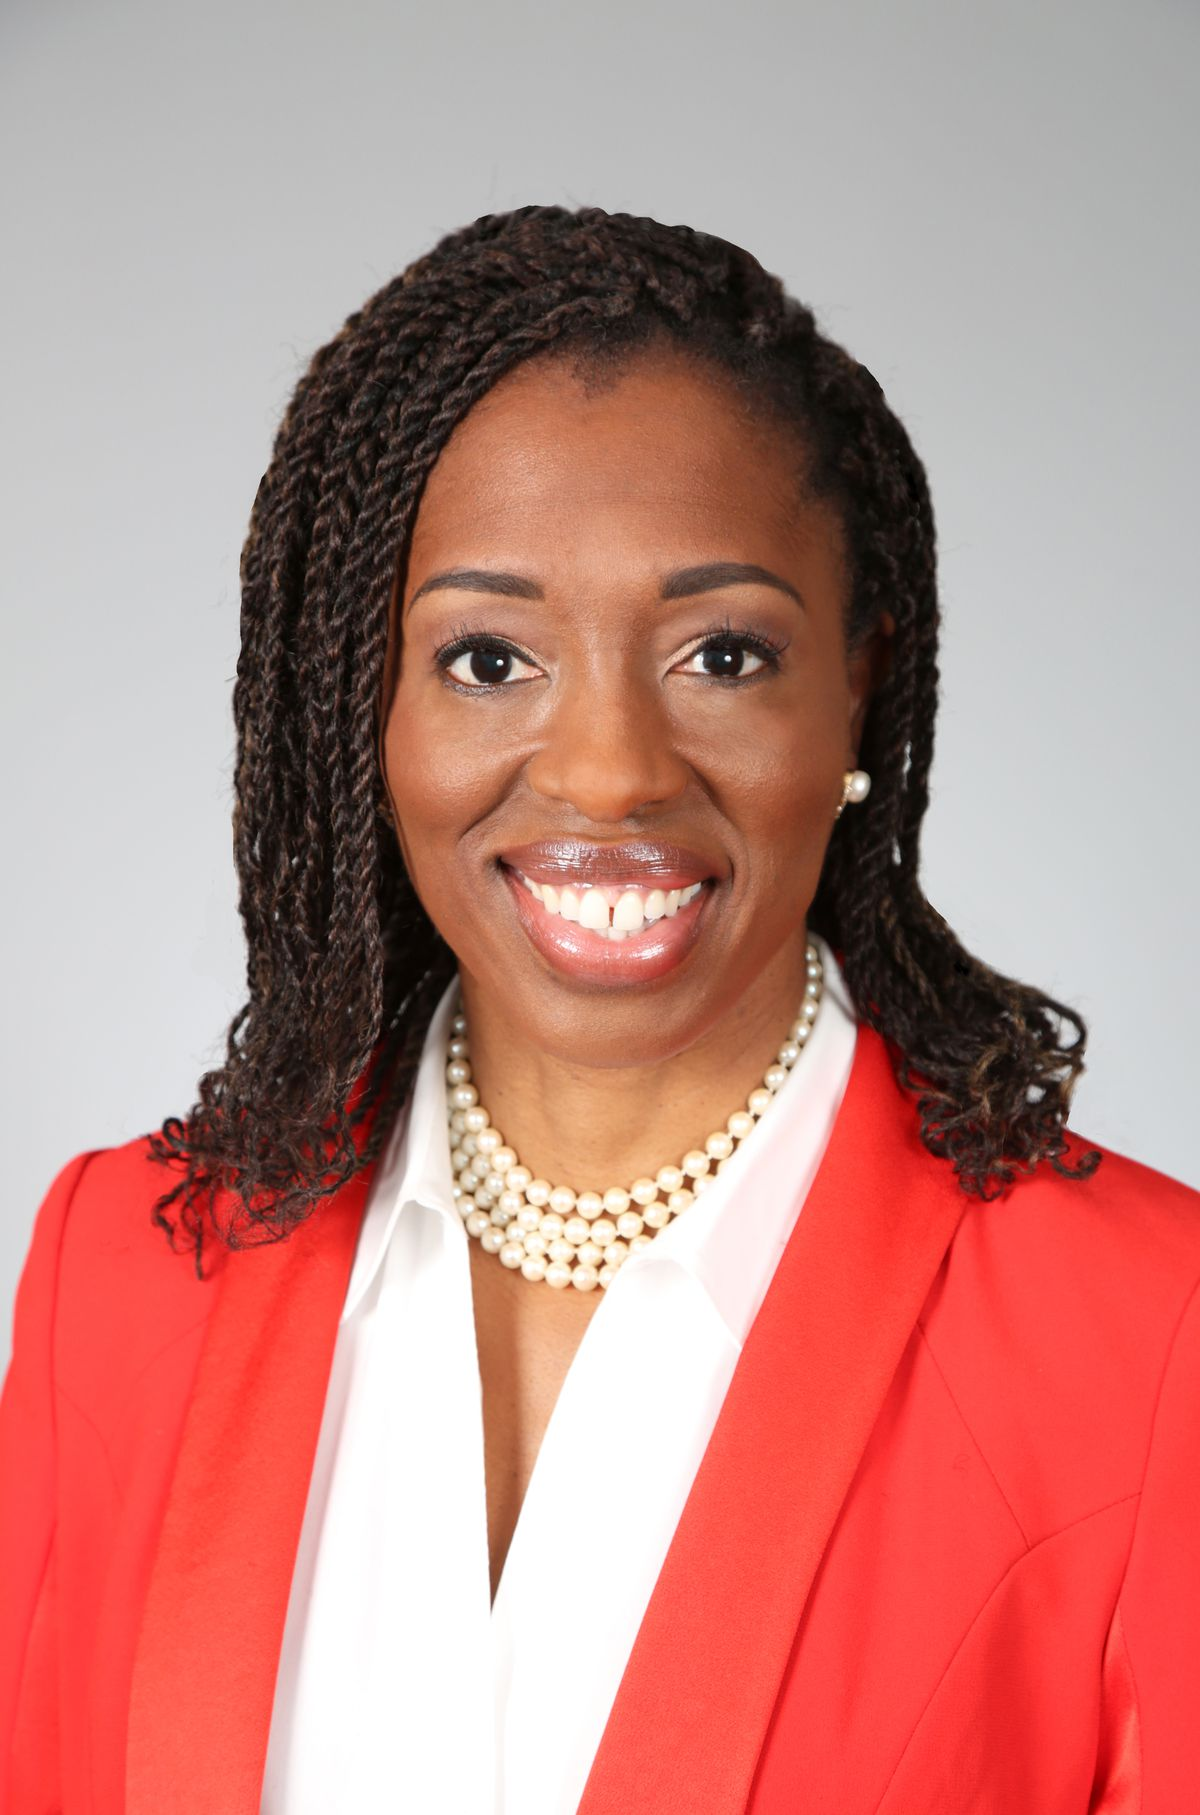 Dr. Ngozi Ezike poses in front of a white background. She is wearing a bright red blazer, with a white shirt and a pearl necklace.